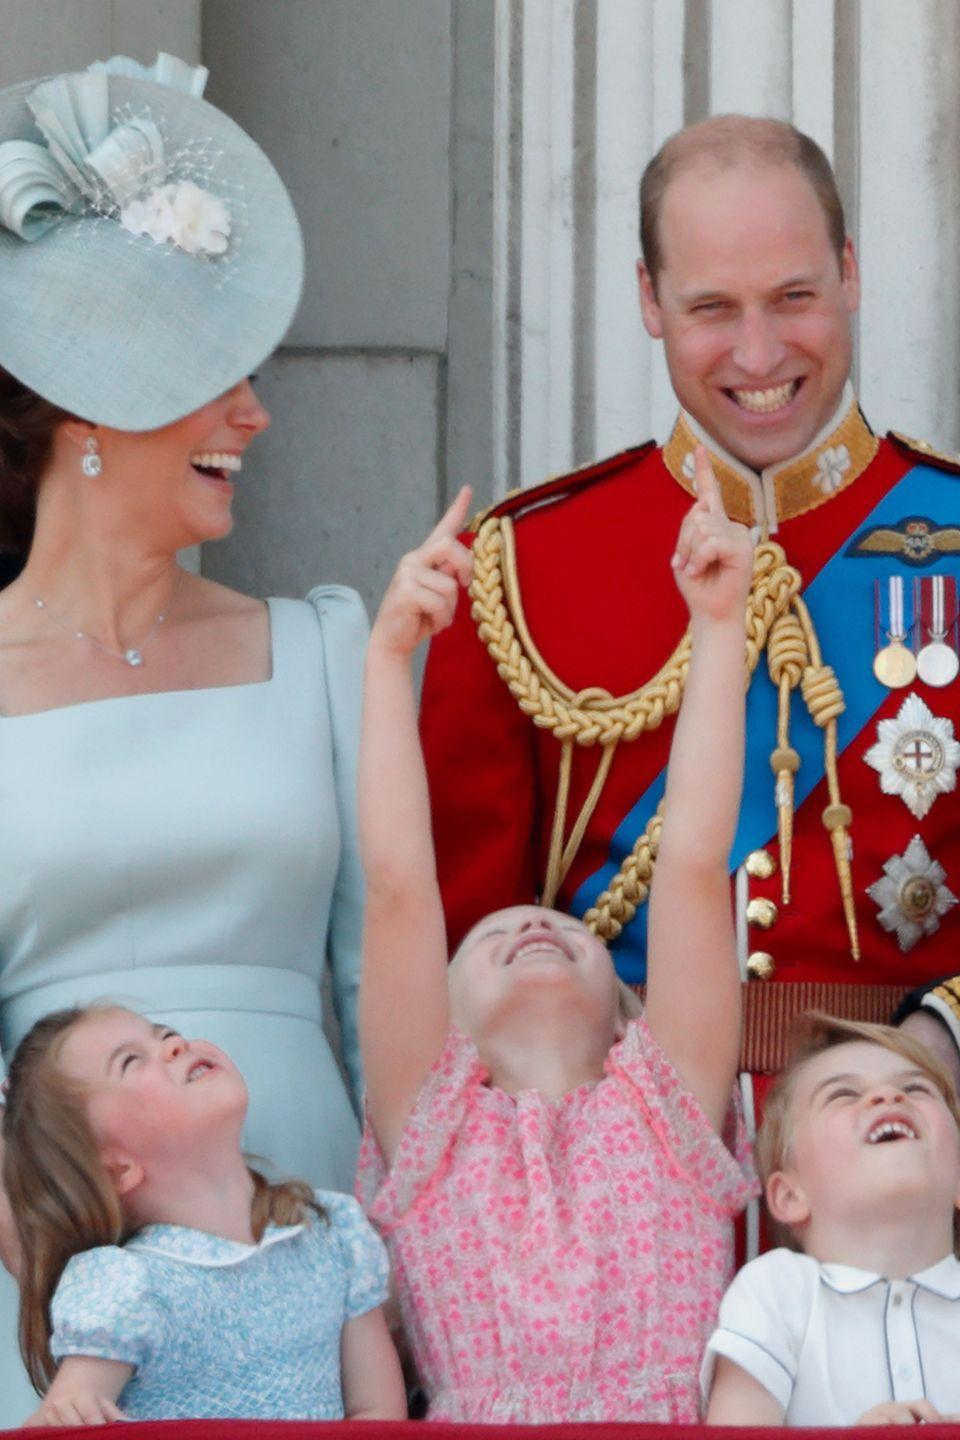 "<p>The Duchess laughs with her family on the balcony of Buckingham Palace during the <a href=""https://www.harpersbazaar.com/celebrity/latest/g21245781/trooping-the-colour-2018-photos/"" rel=""nofollow noopener"" target=""_blank"" data-ylk=""slk:Trooping the Colour 2018"" class=""link rapid-noclick-resp"">Trooping the Colour 2018</a>.</p>"